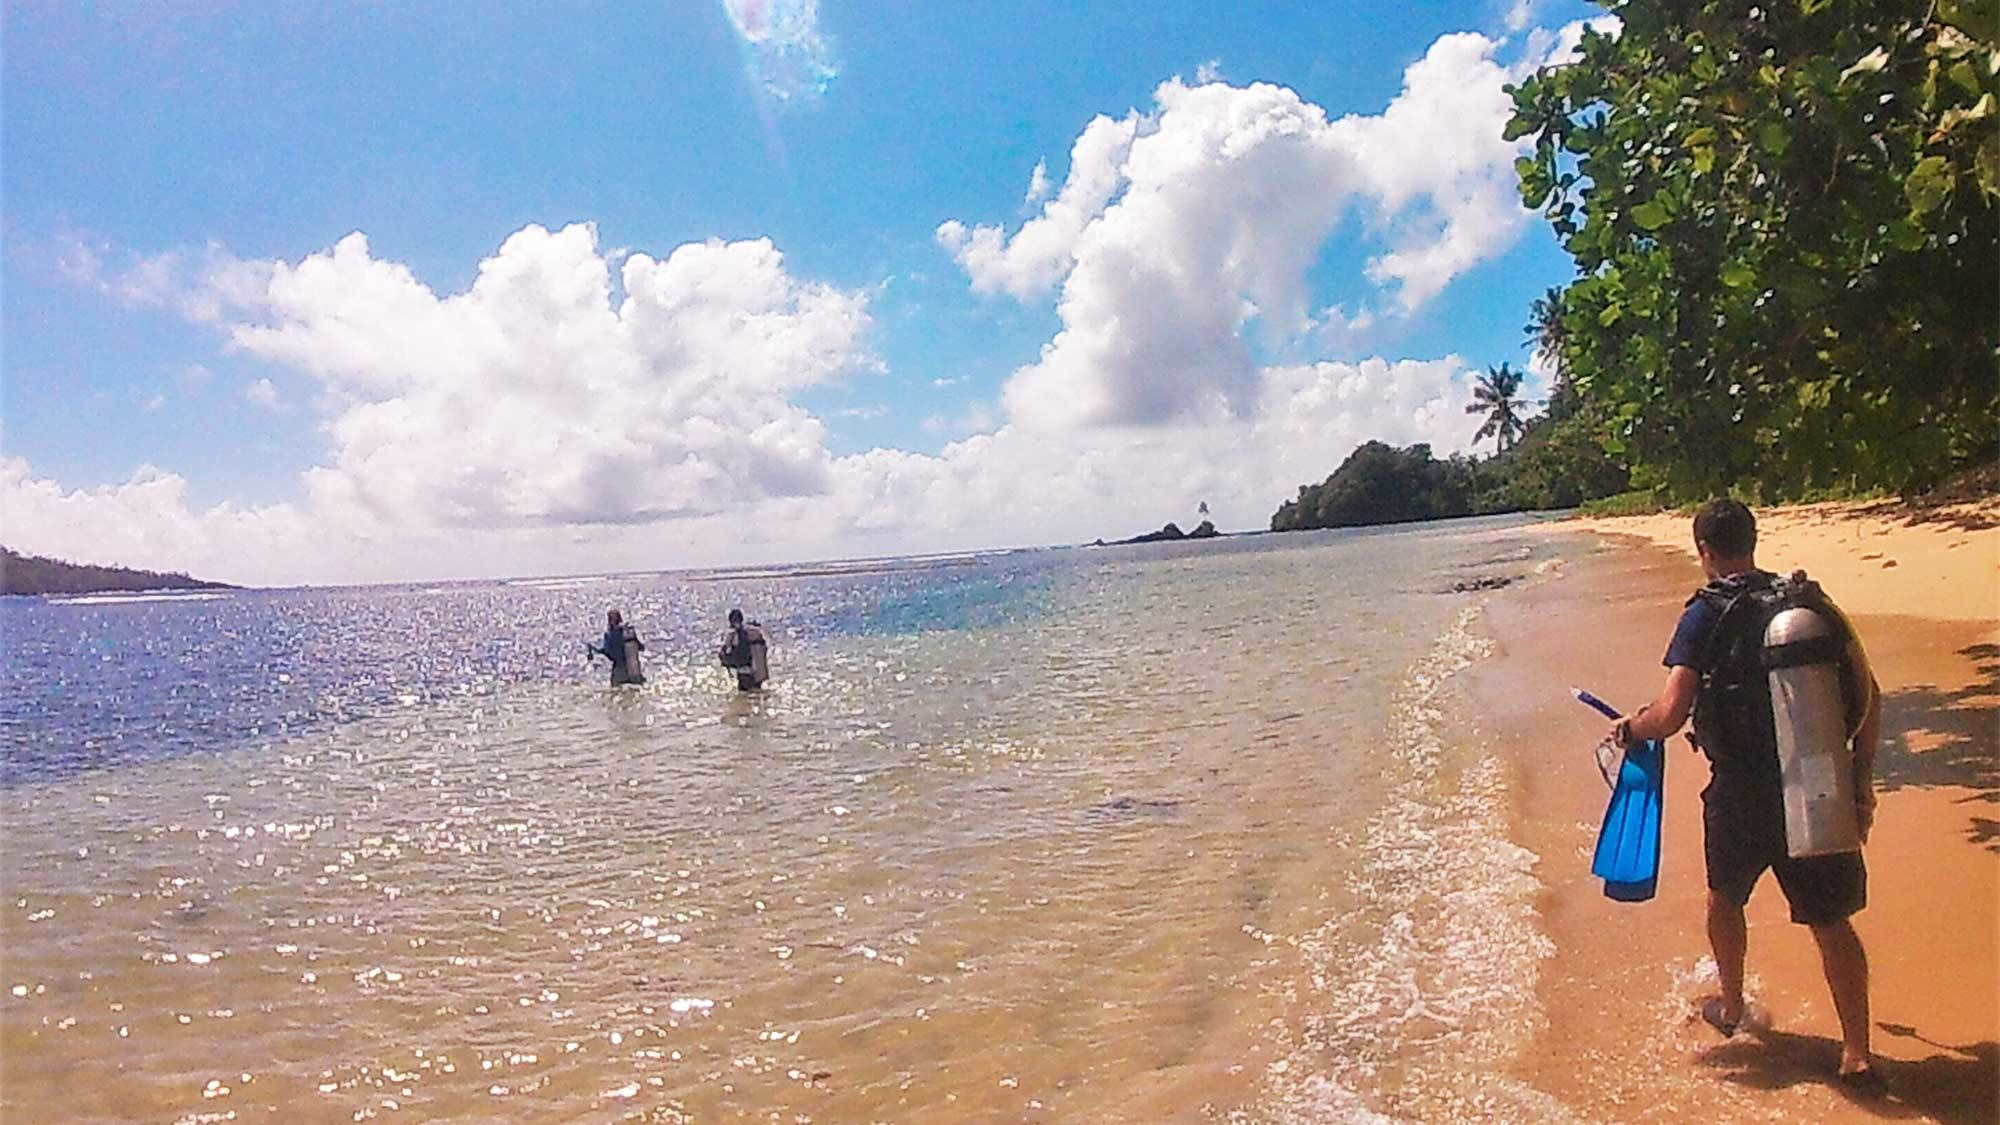 Snorkelers at Forgotten Bay in Samoa